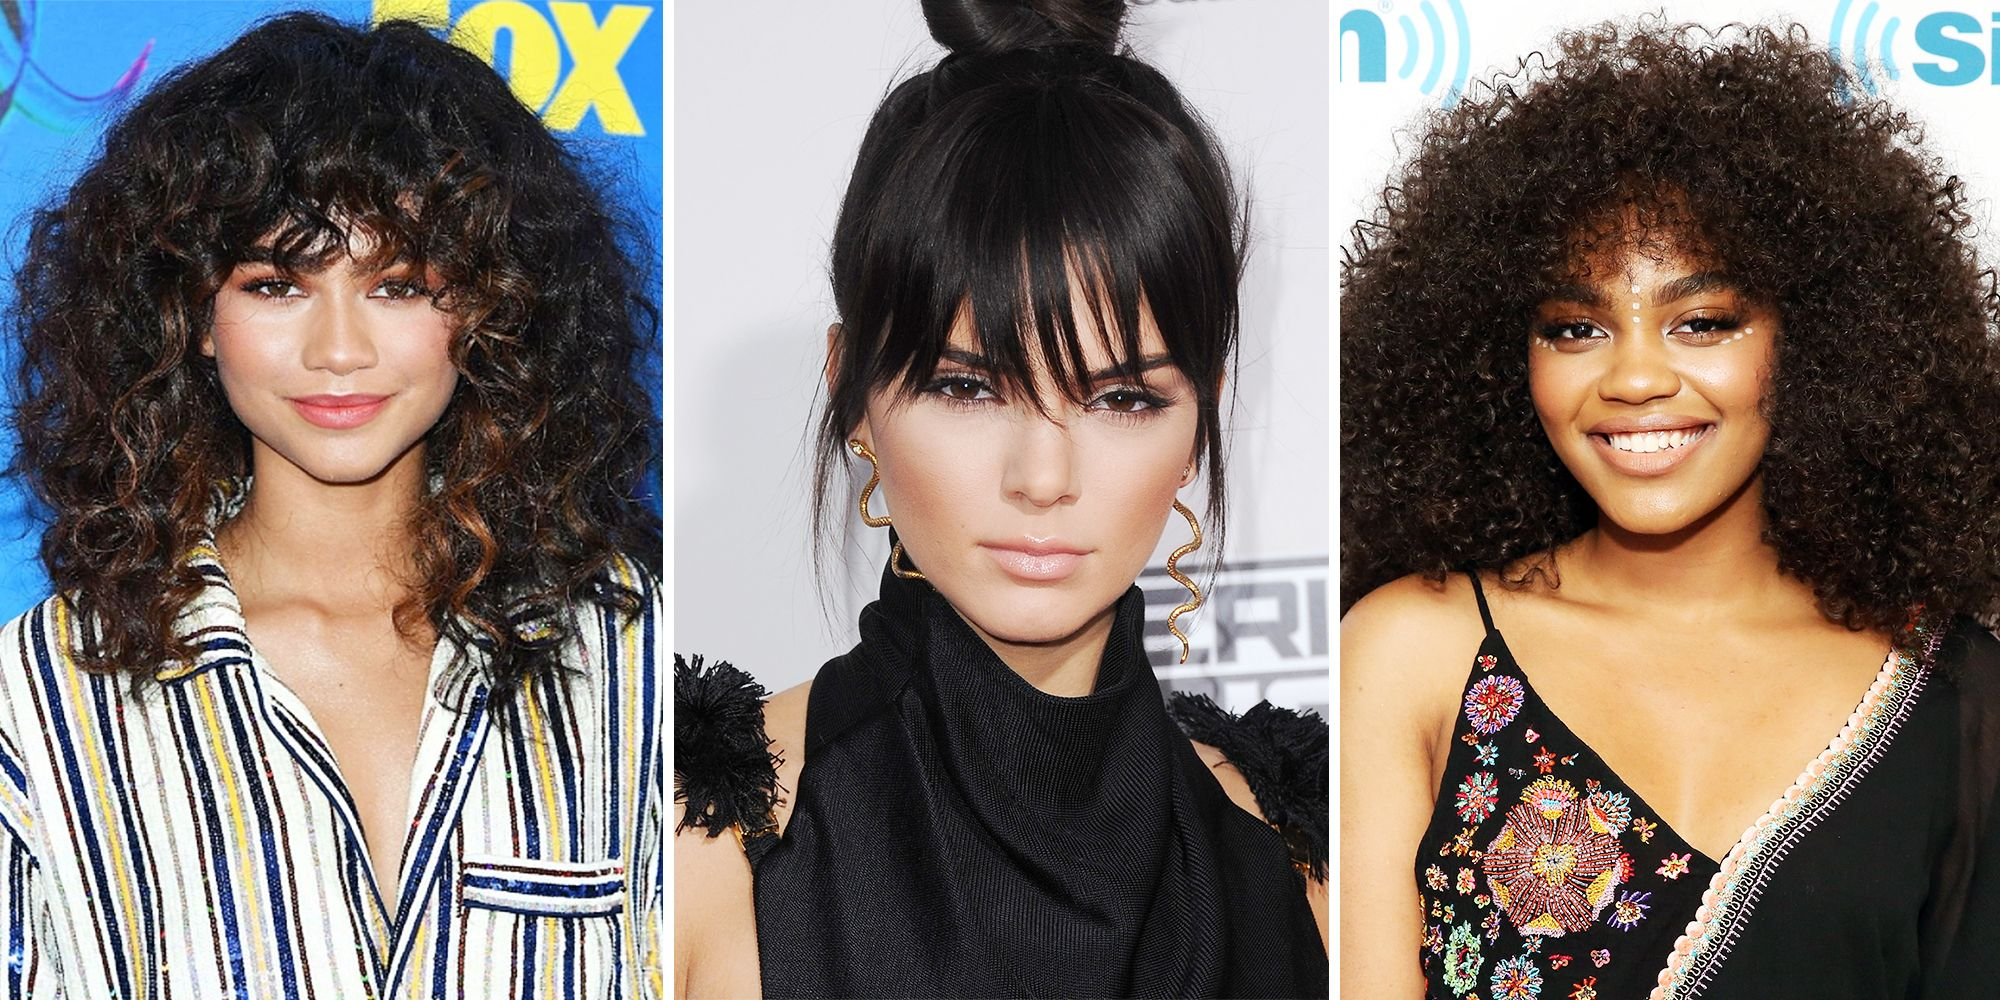 Hair Styles You Can Do For Short Hair: 9 Cute Hairstyles With Bangs